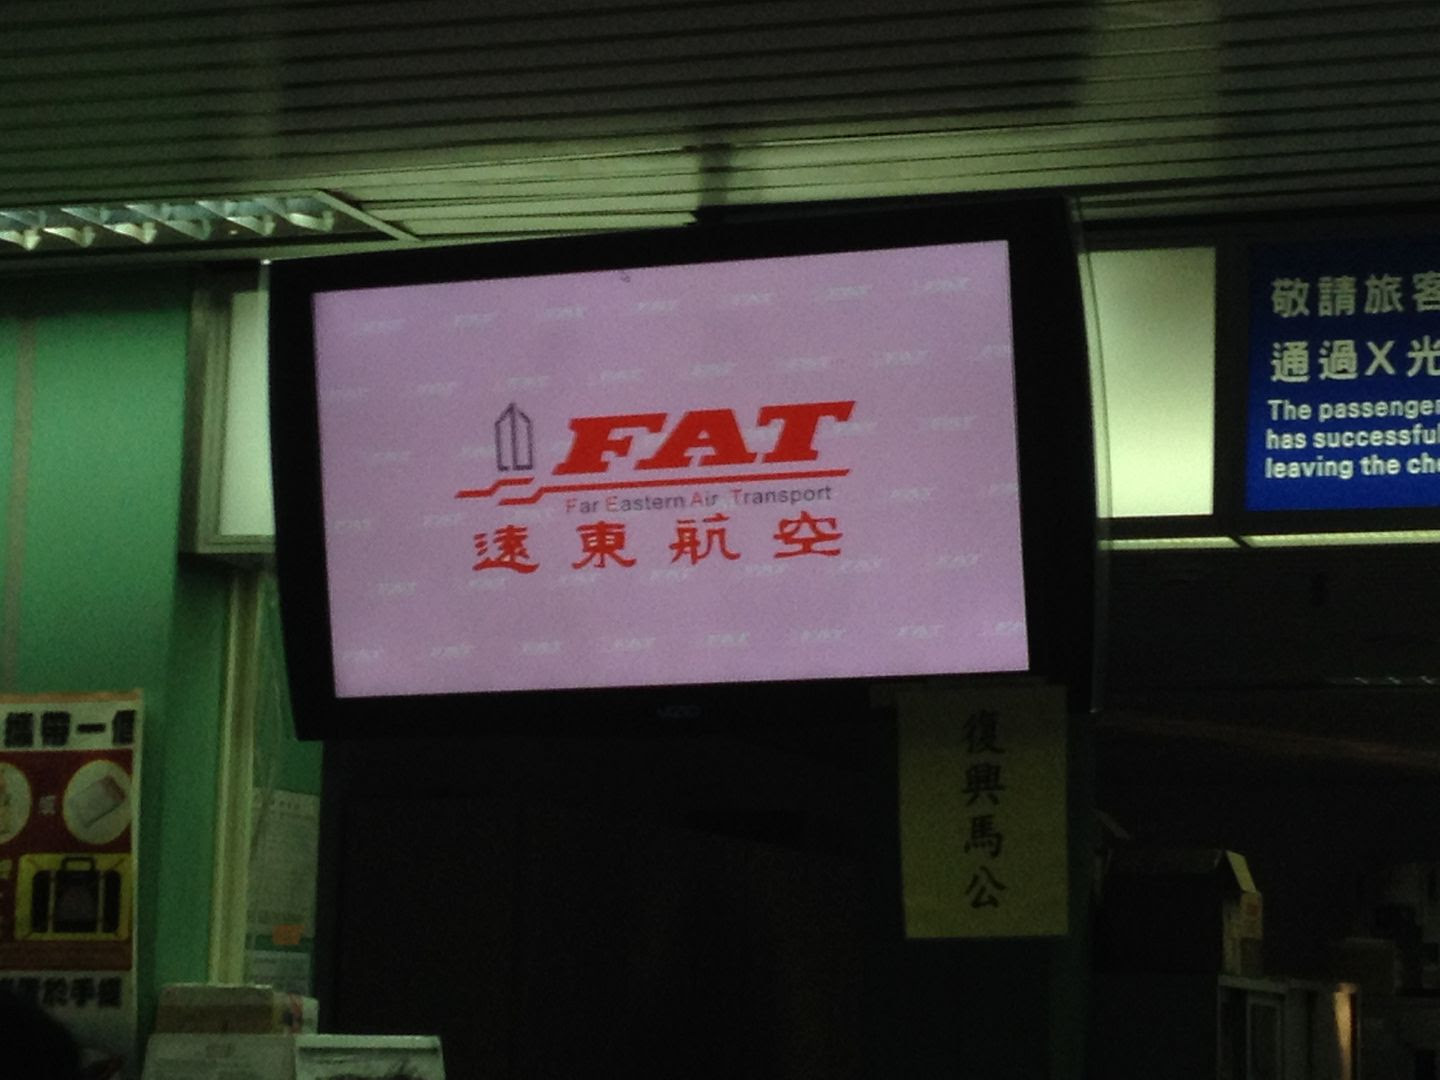 FAT--Far Eastern Air Transport. Why not FEAT? photo 2014-01-03080423_zps28db6186.jpg